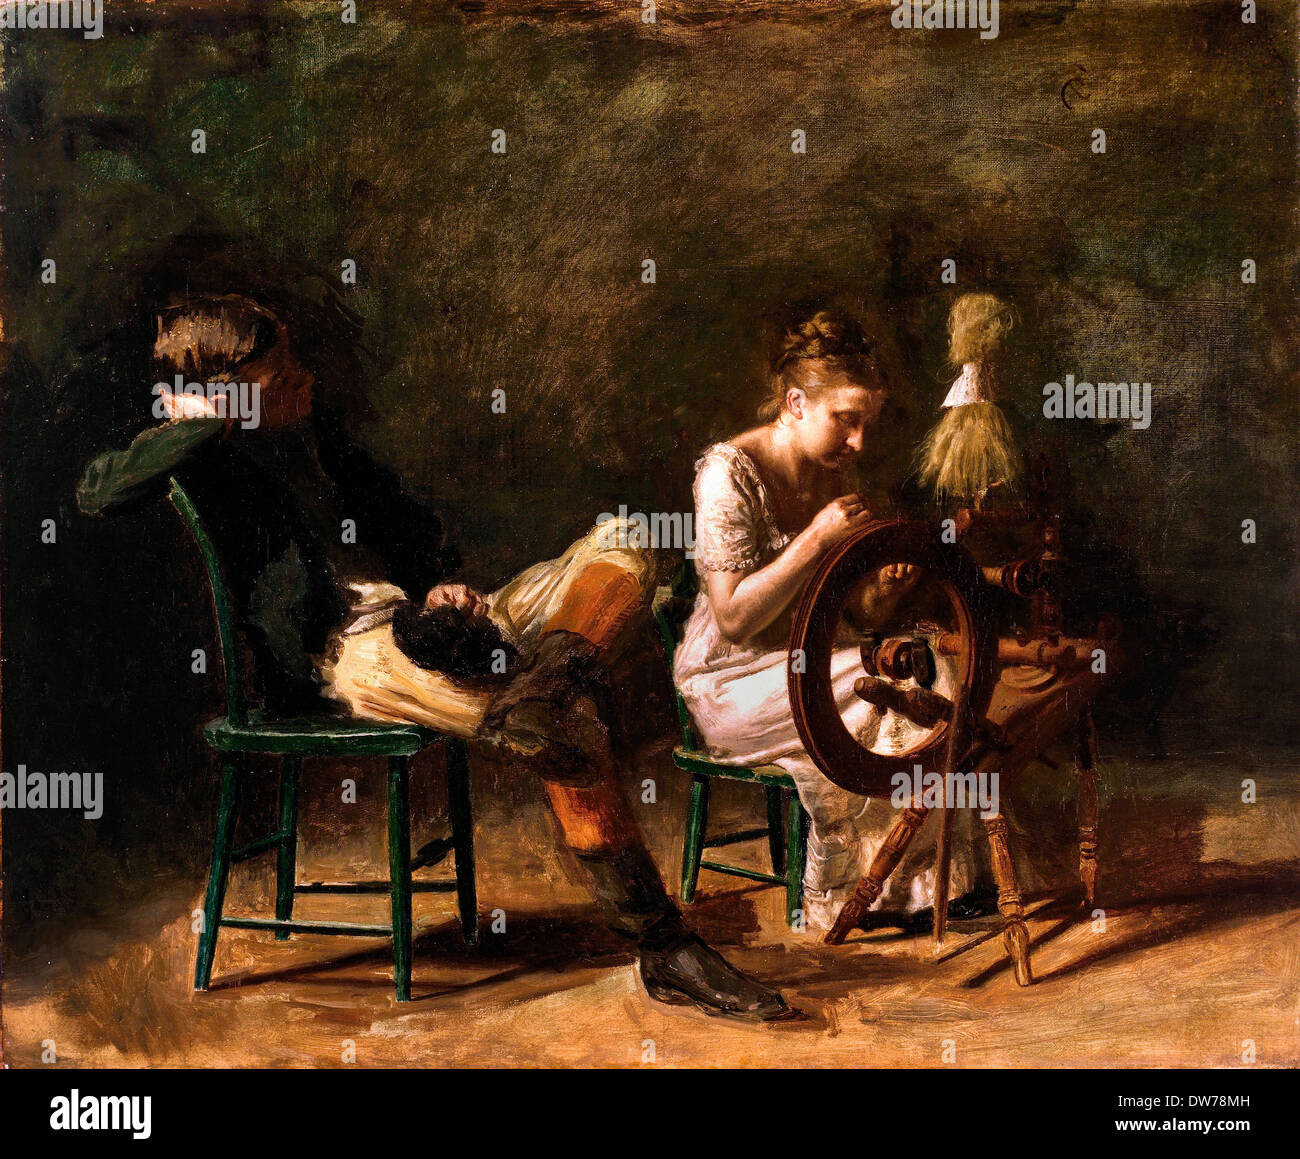 Thomas Eakins, The Courtship. Circa 1878. Oil on canvas. Fine Arts Museums of San Francisco, USA. - Stock Image